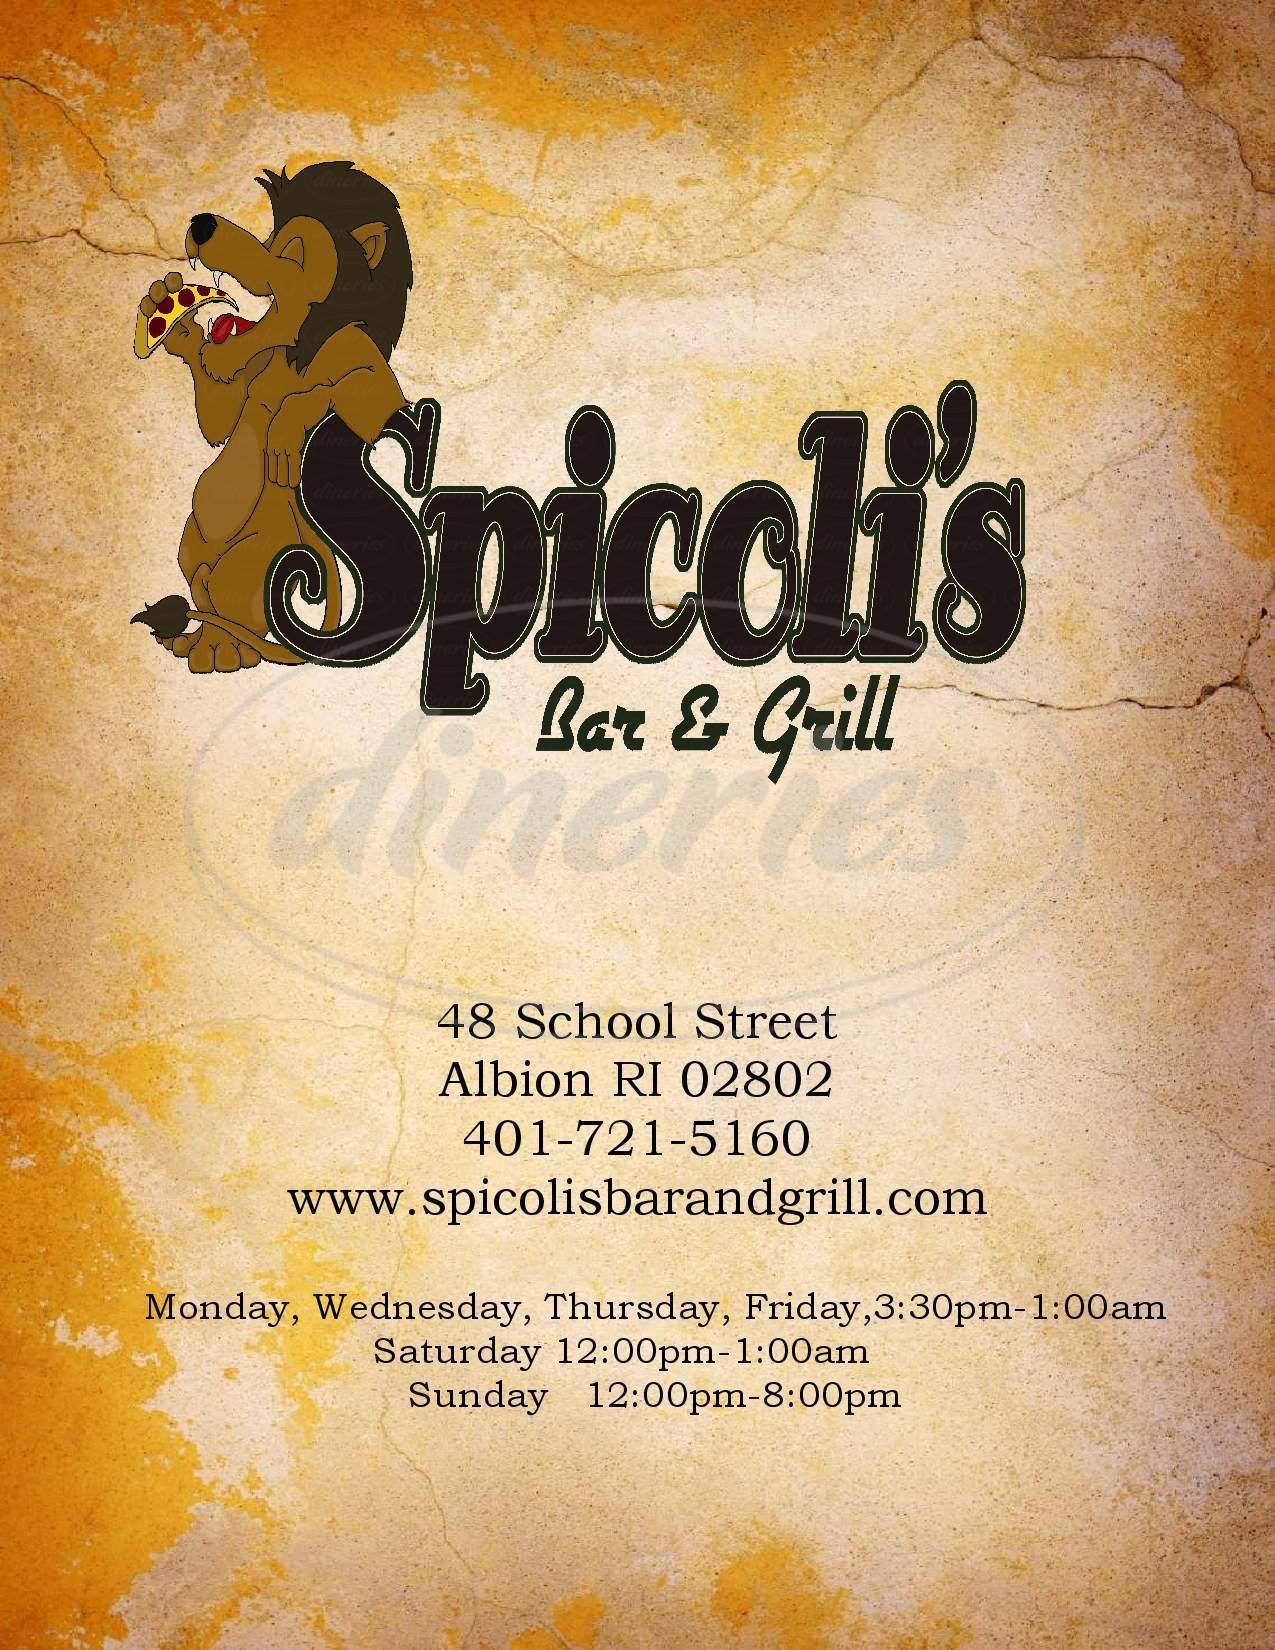 menu for Spicoli's Bar & Grill